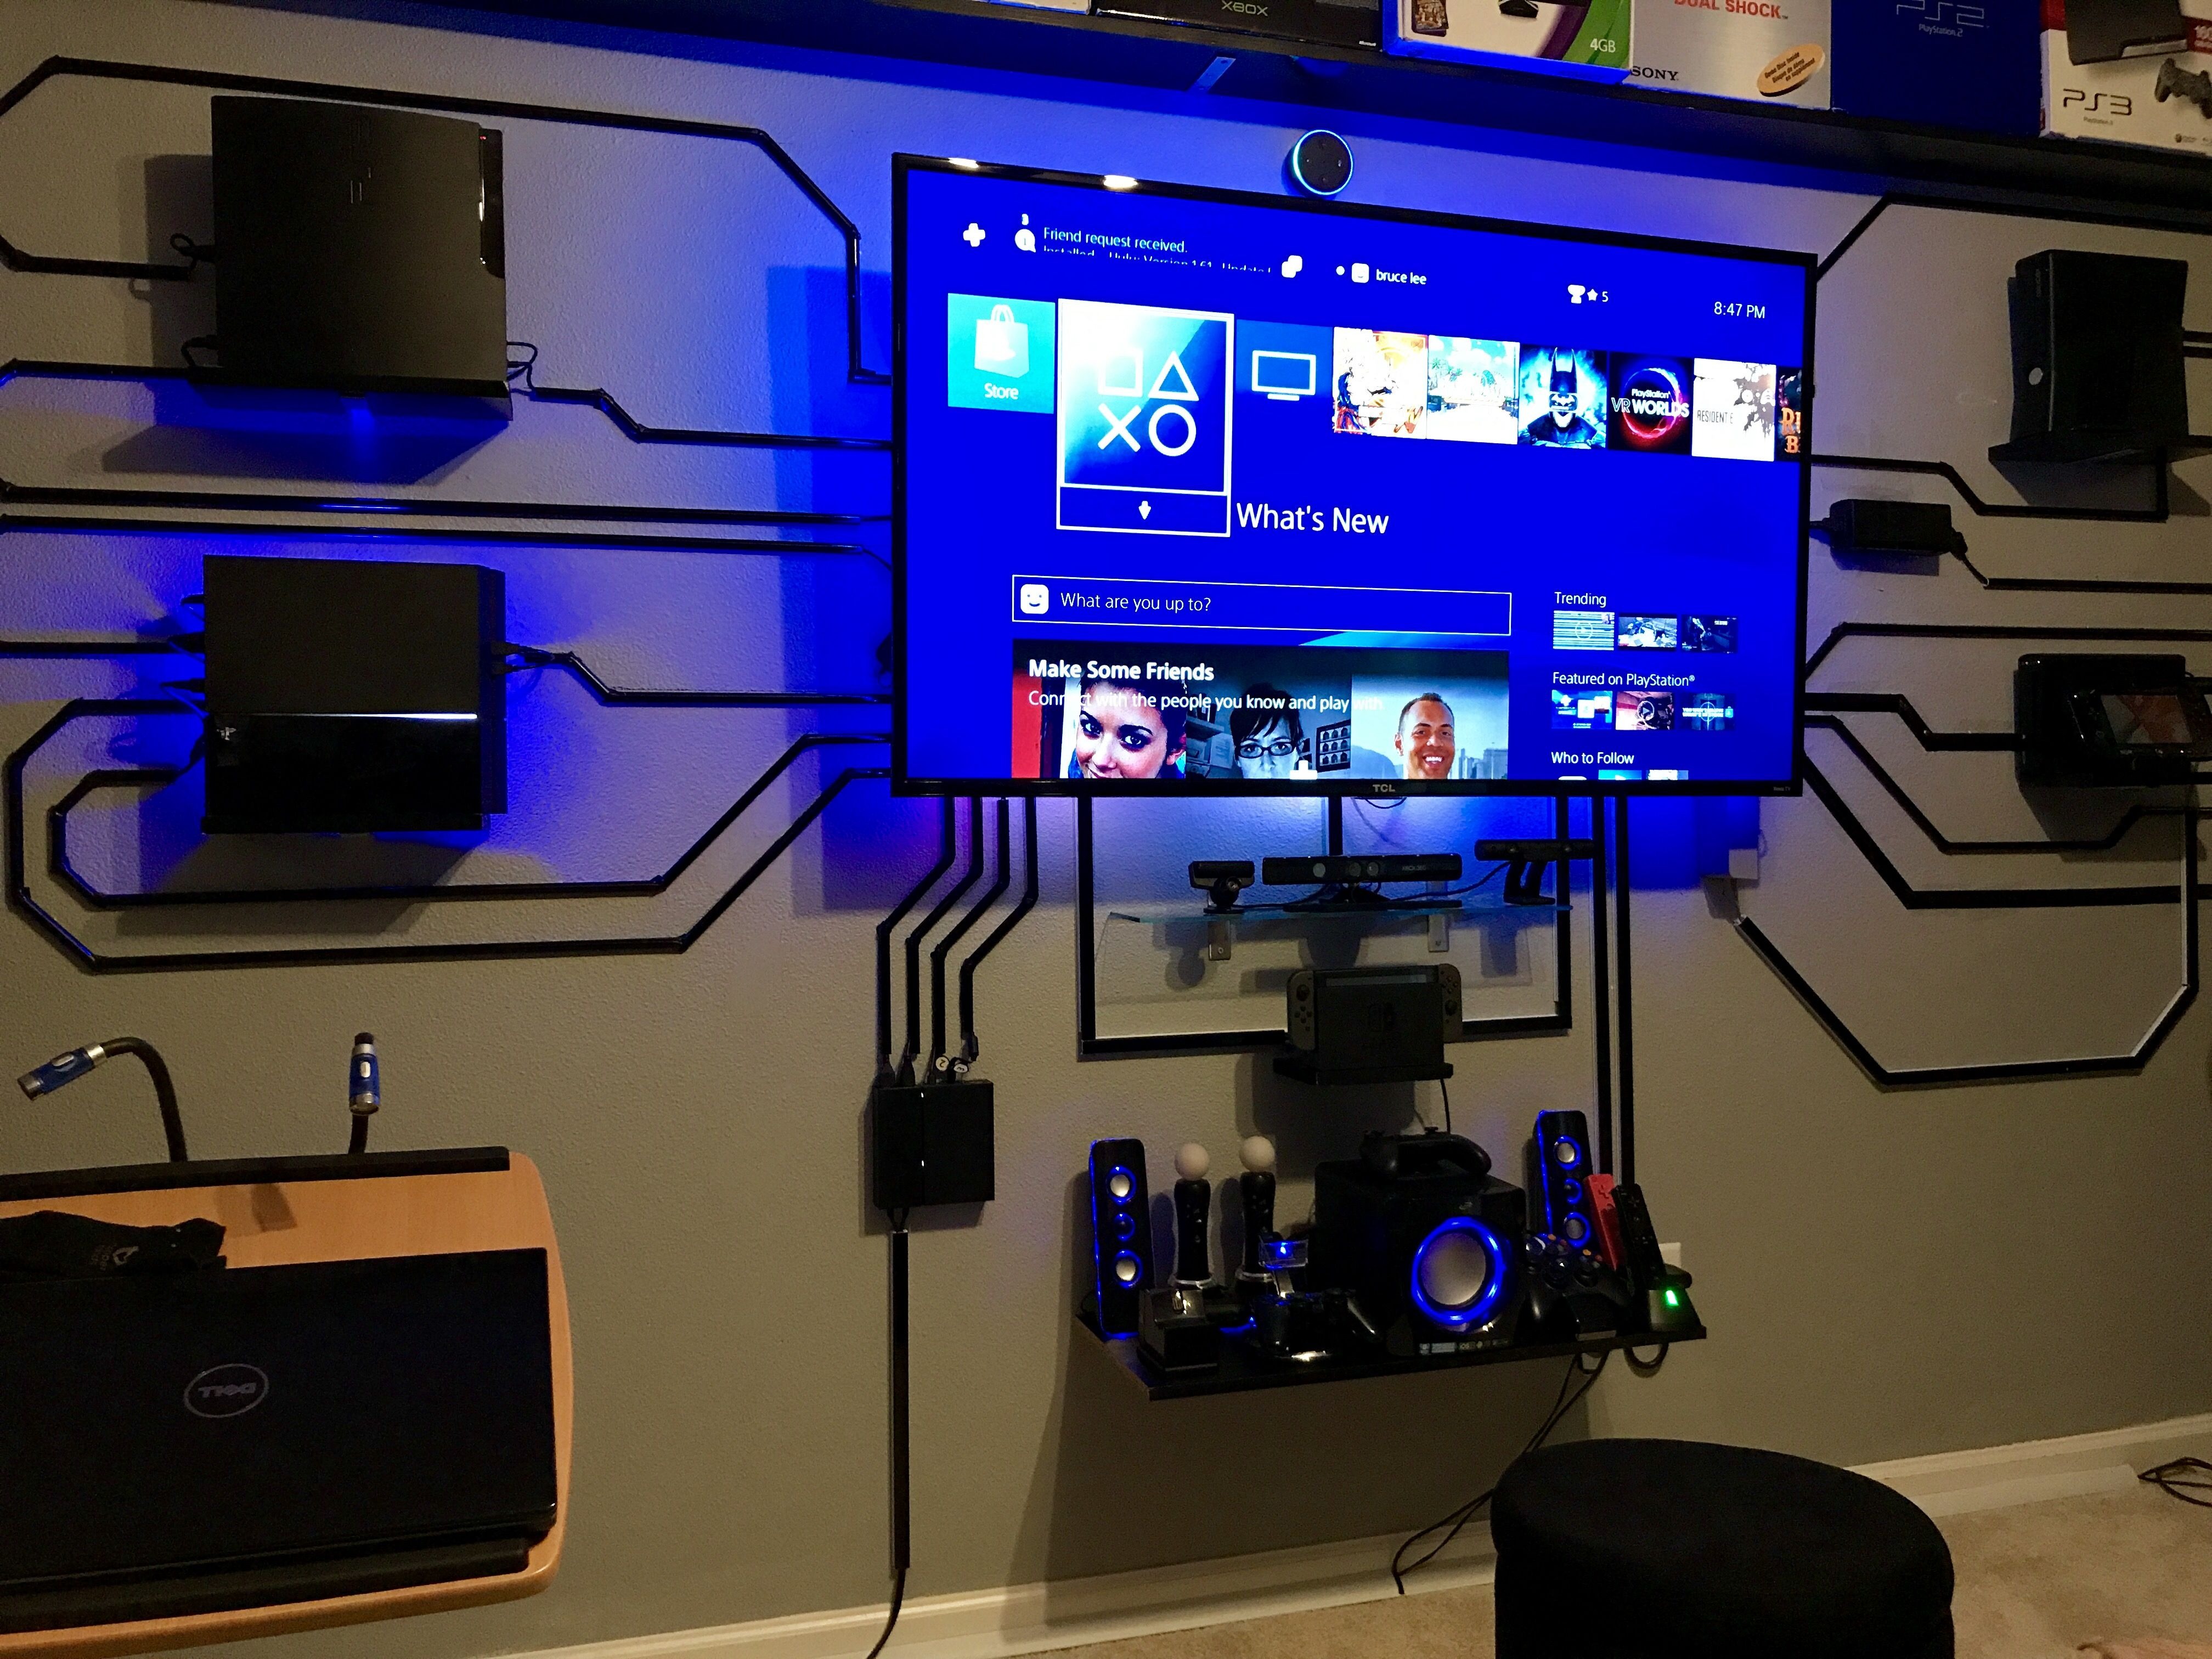 Wall Mounted Tv Setup Ideas Gaming Desks Organization Pinterest Room Game Room